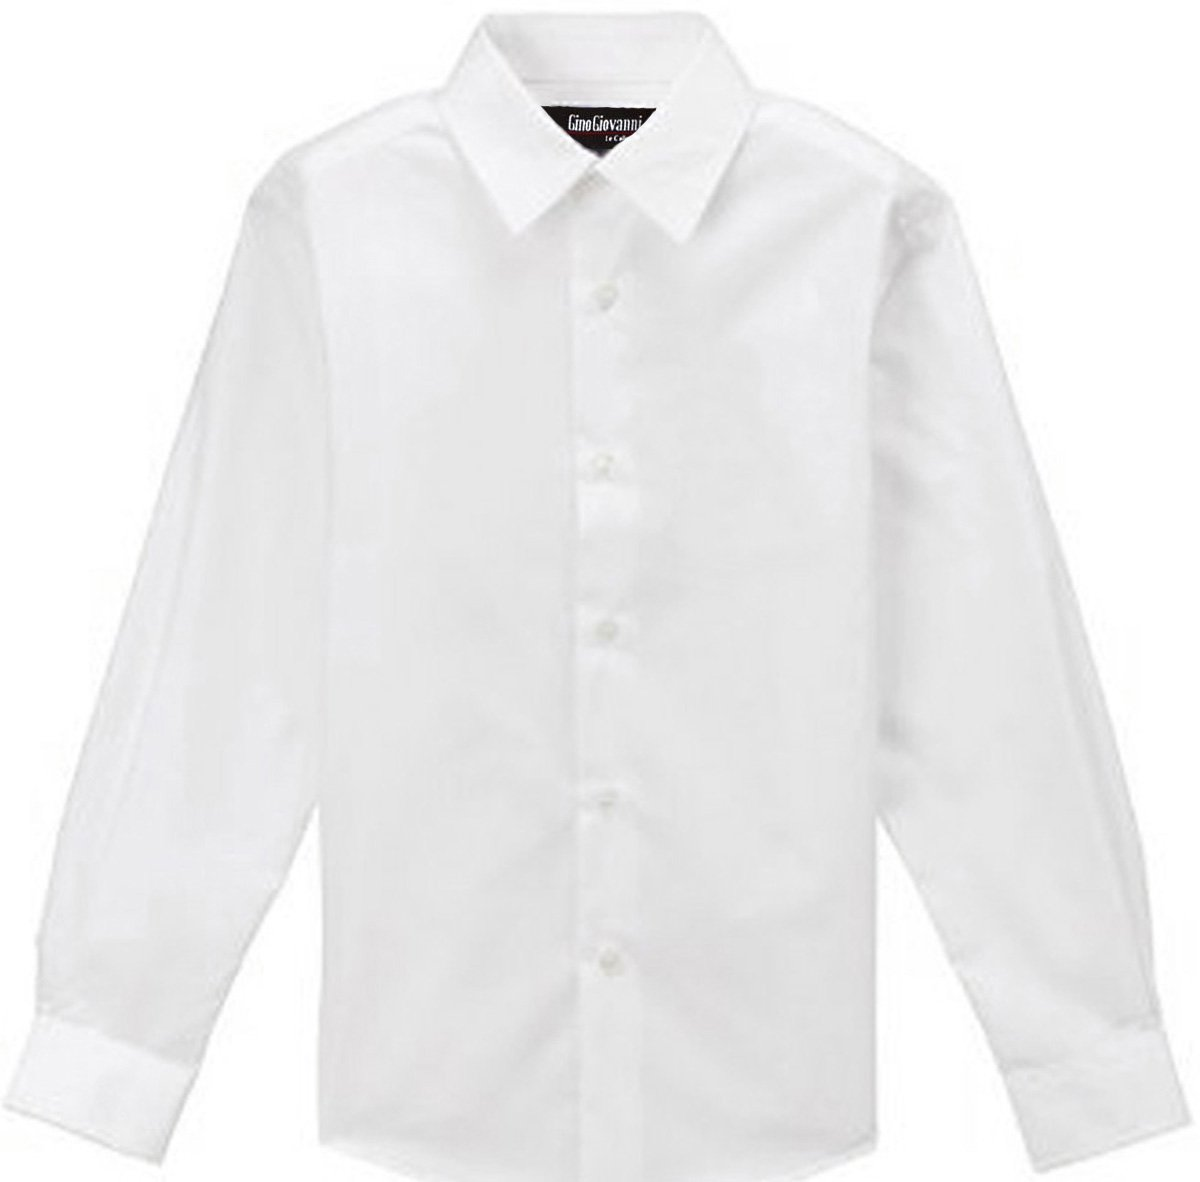 WHITE SHIRT for Boys Gino Formal Dress Shirt From Baby to Teen (5)